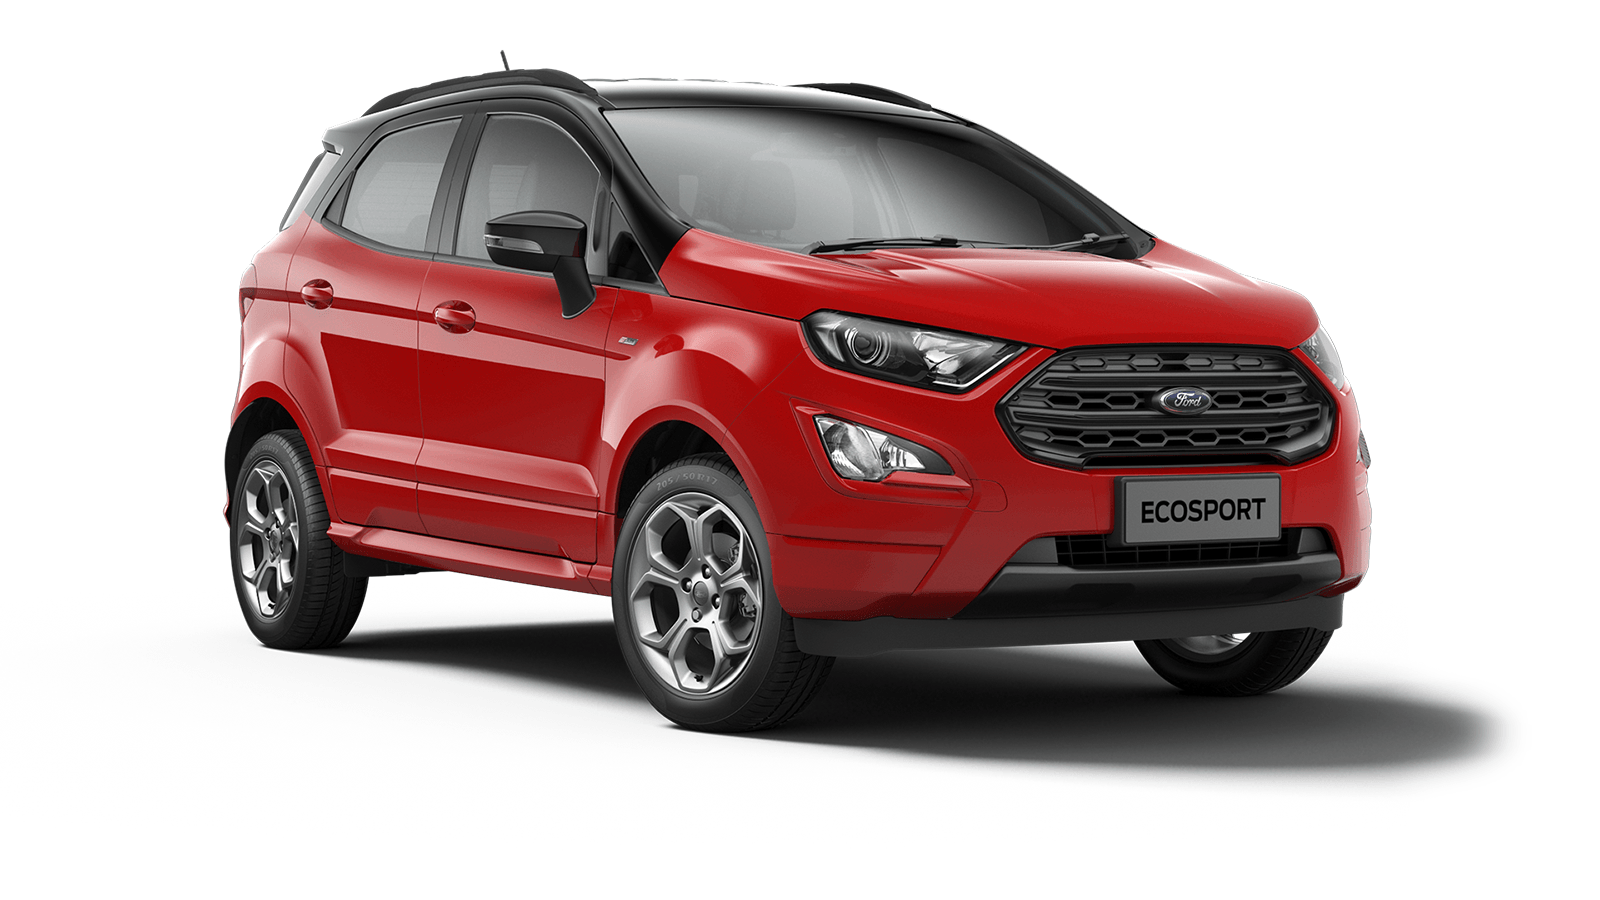 https://www.dealerinternet.co.uk/images/B515%20ECOSPORT/2019/5%20Door/ST-Line/RACE-RED.png